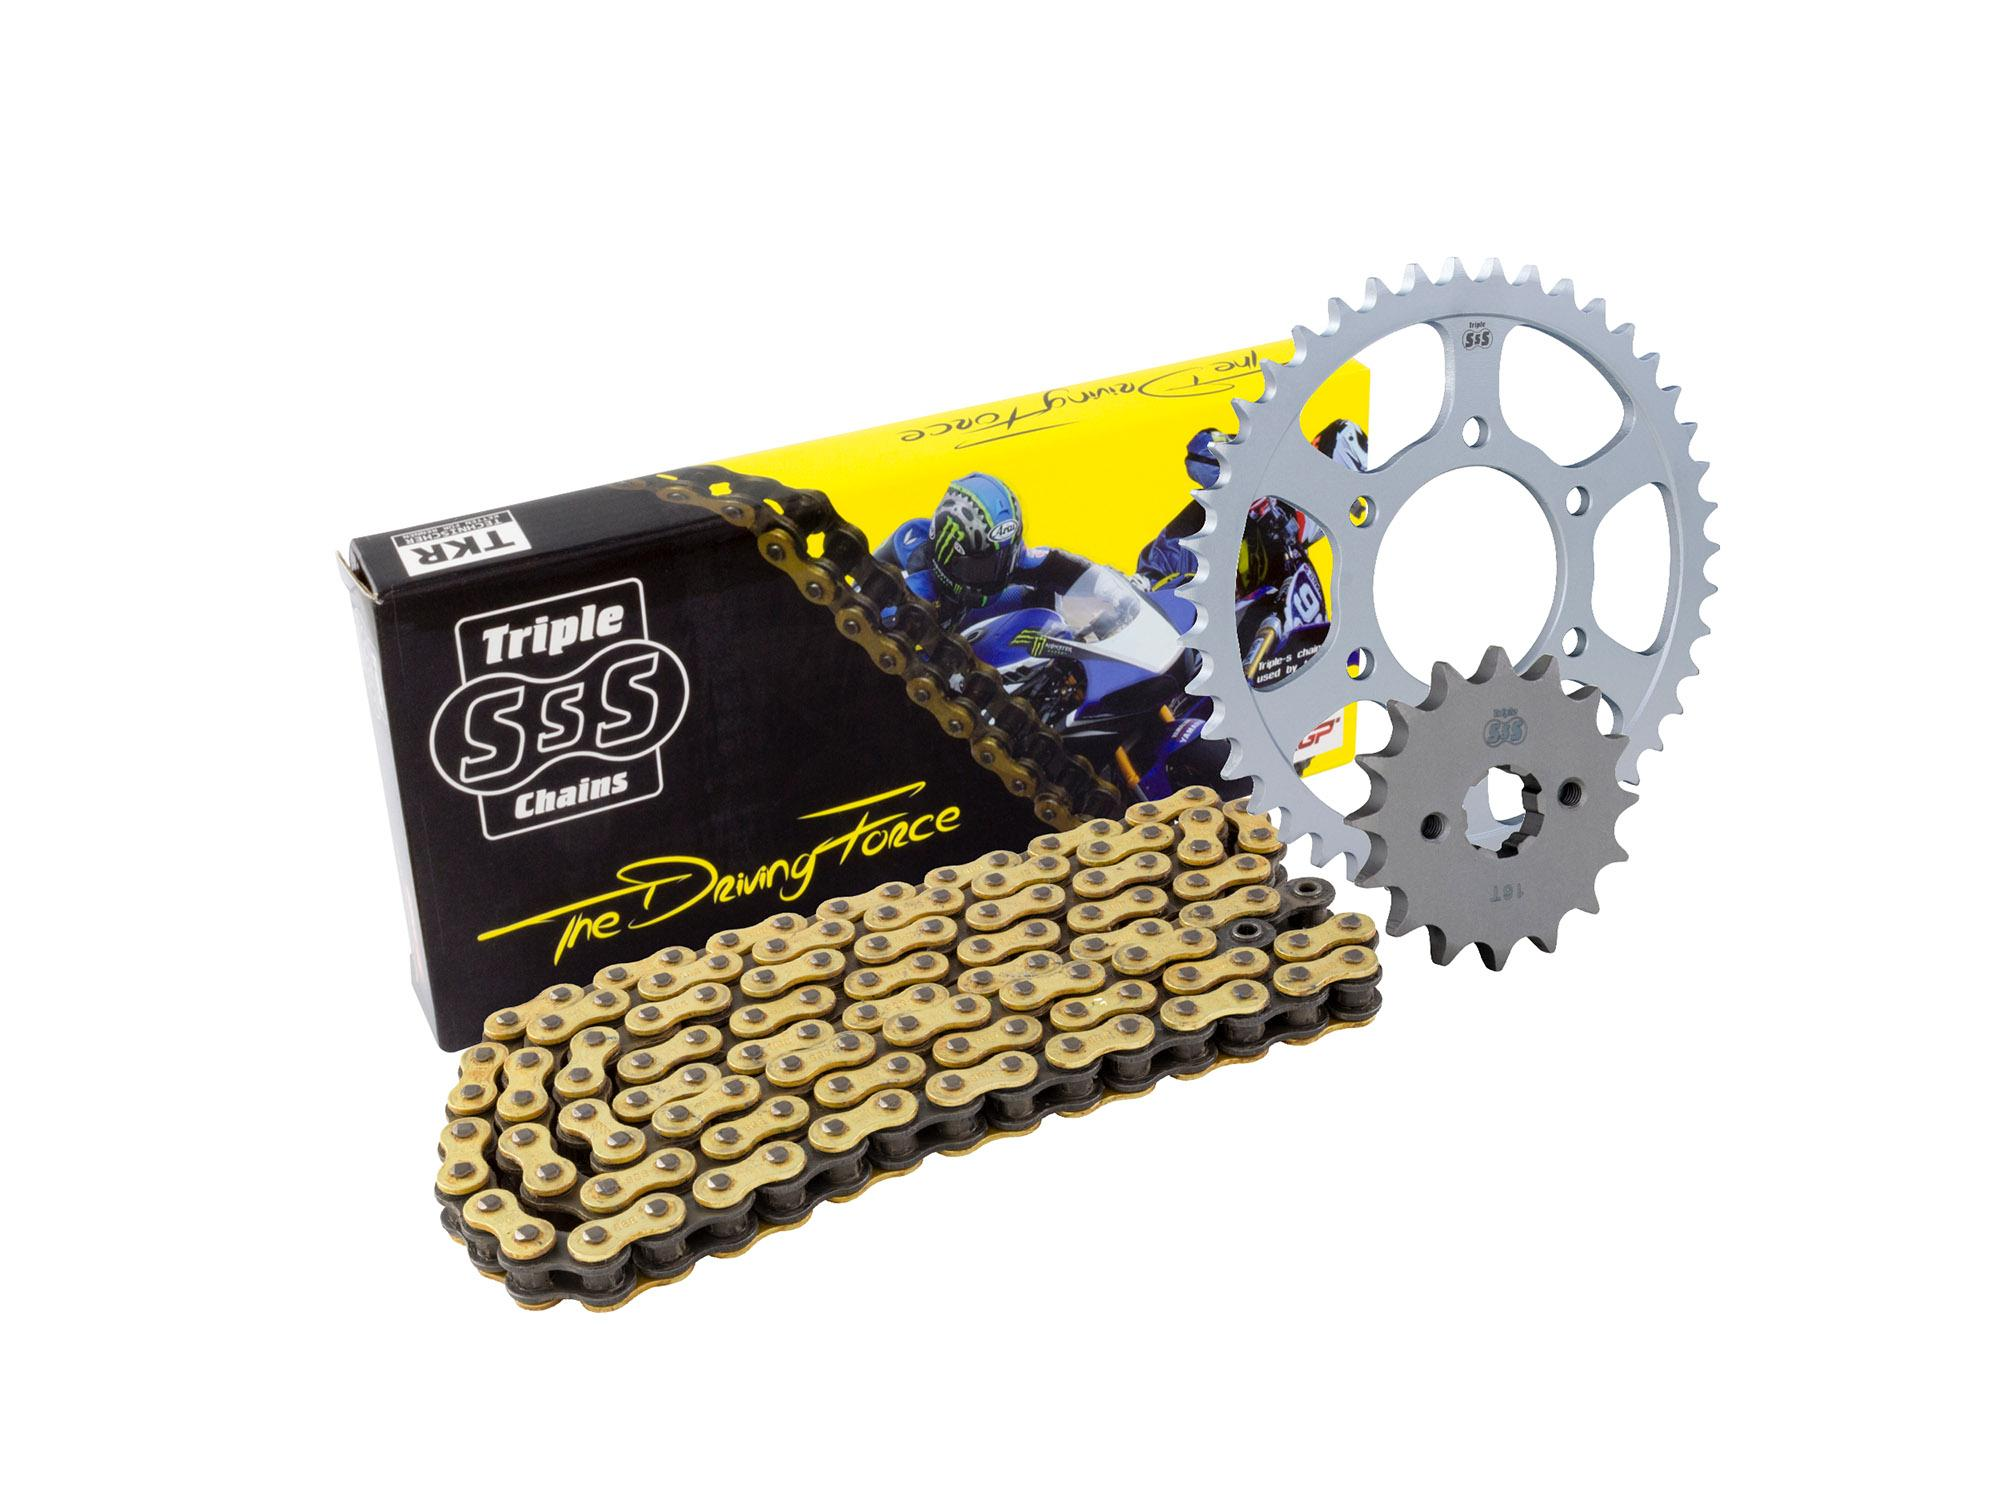 Triumph 675 Street Triple 08-16, 675 Street Triple R 10-16 Chain & Sprocket Kit: 16T Front, 47T Rear, HD O-Ring Gold Chain 525H 118 Link